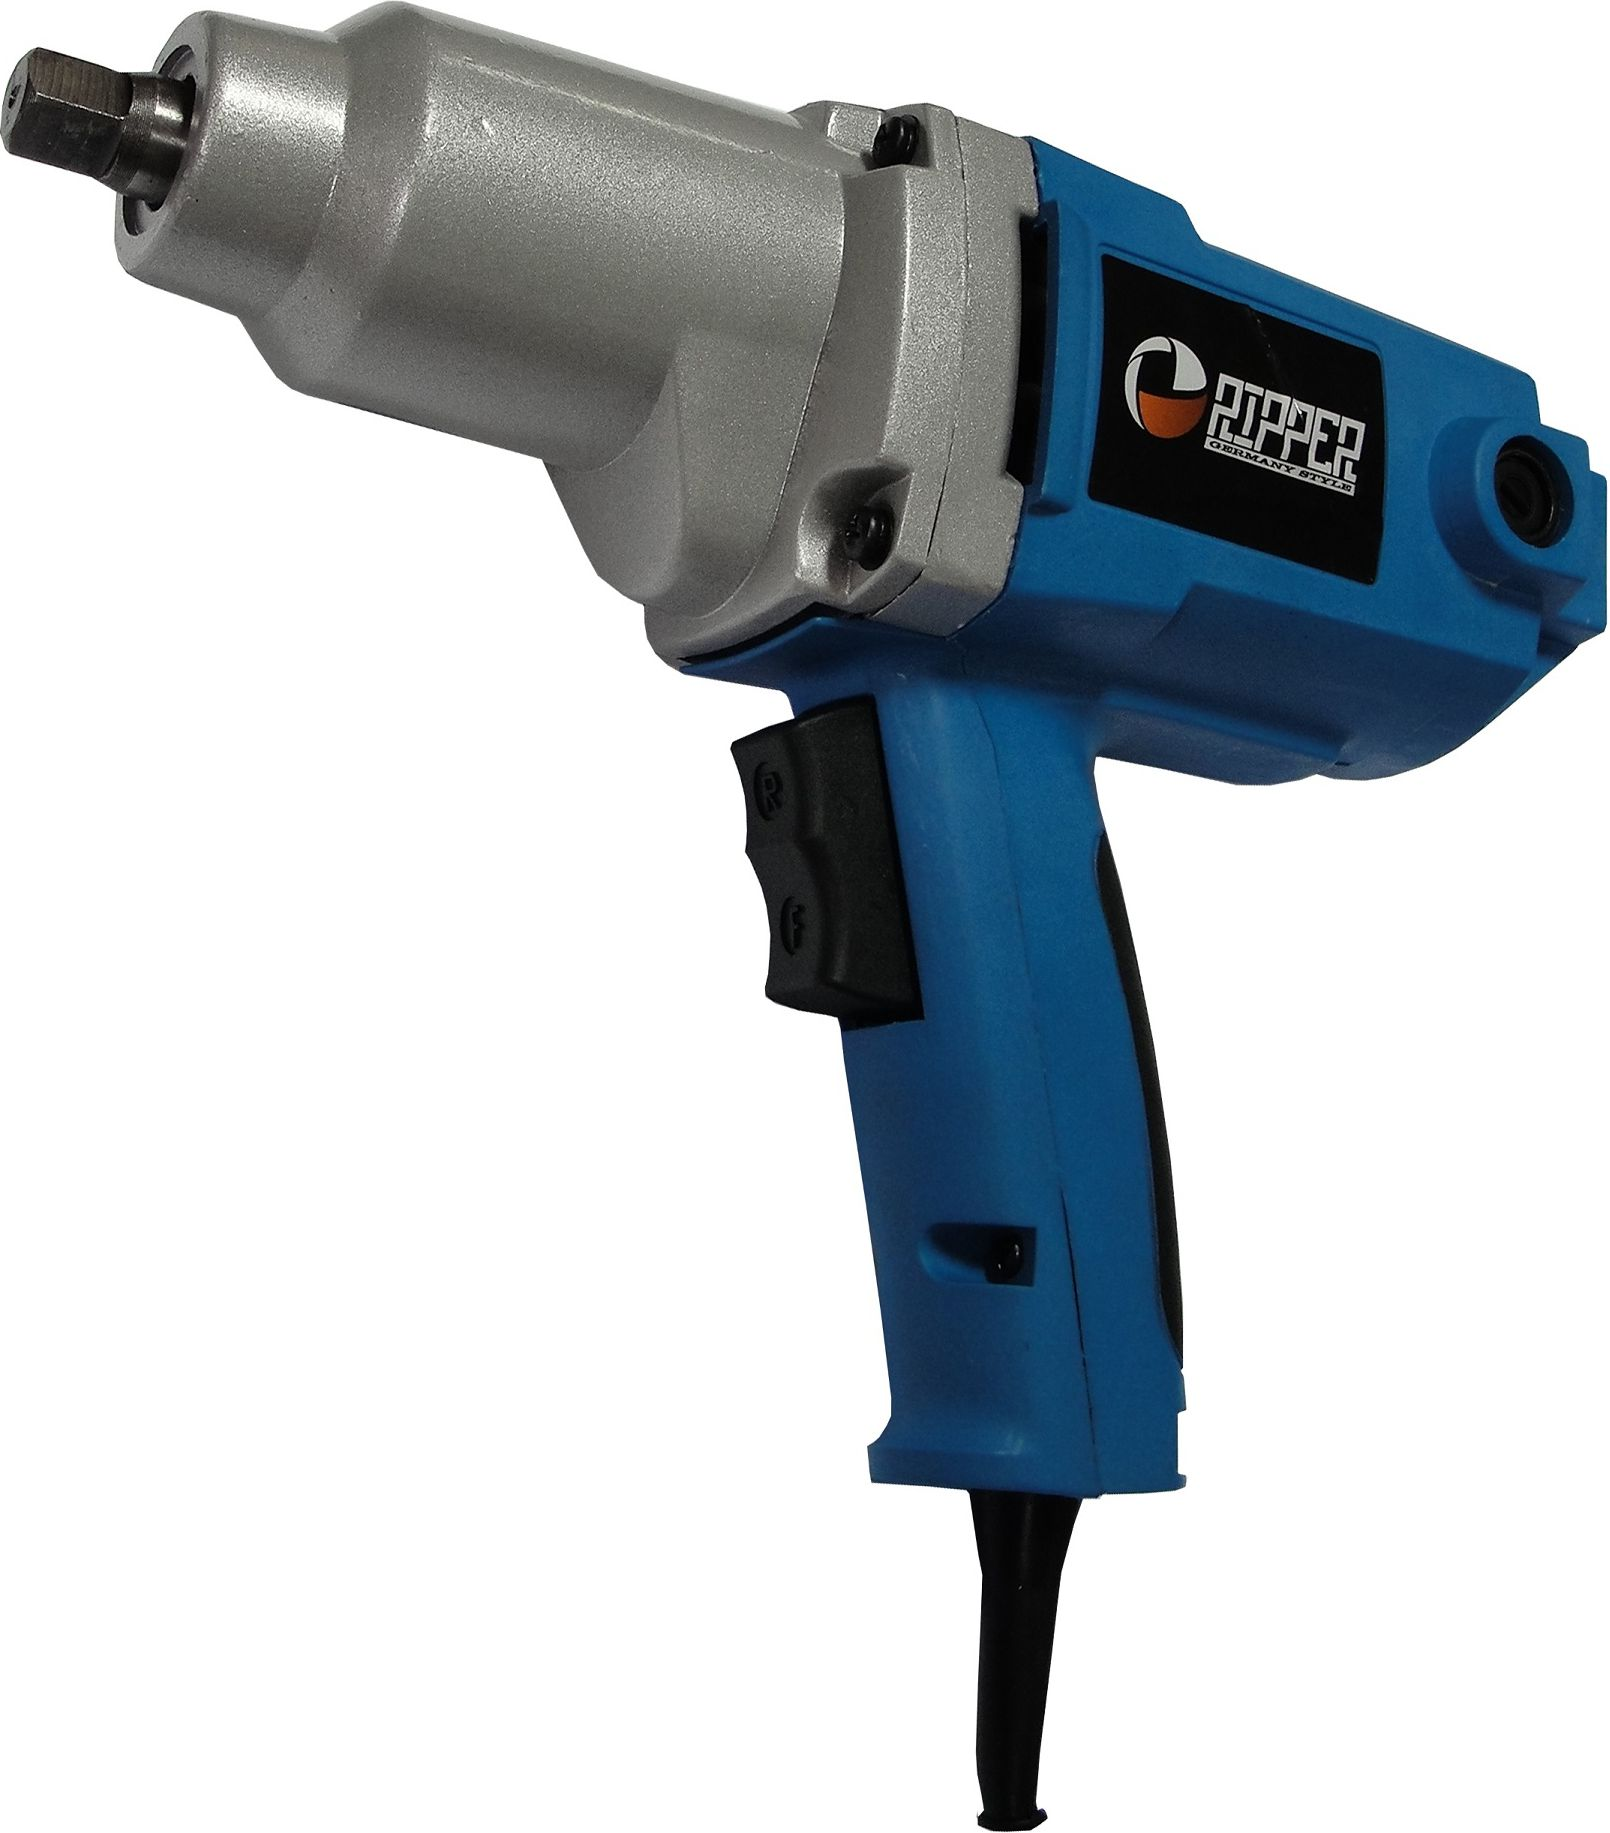 MAR-POL Impact wrench 1/2